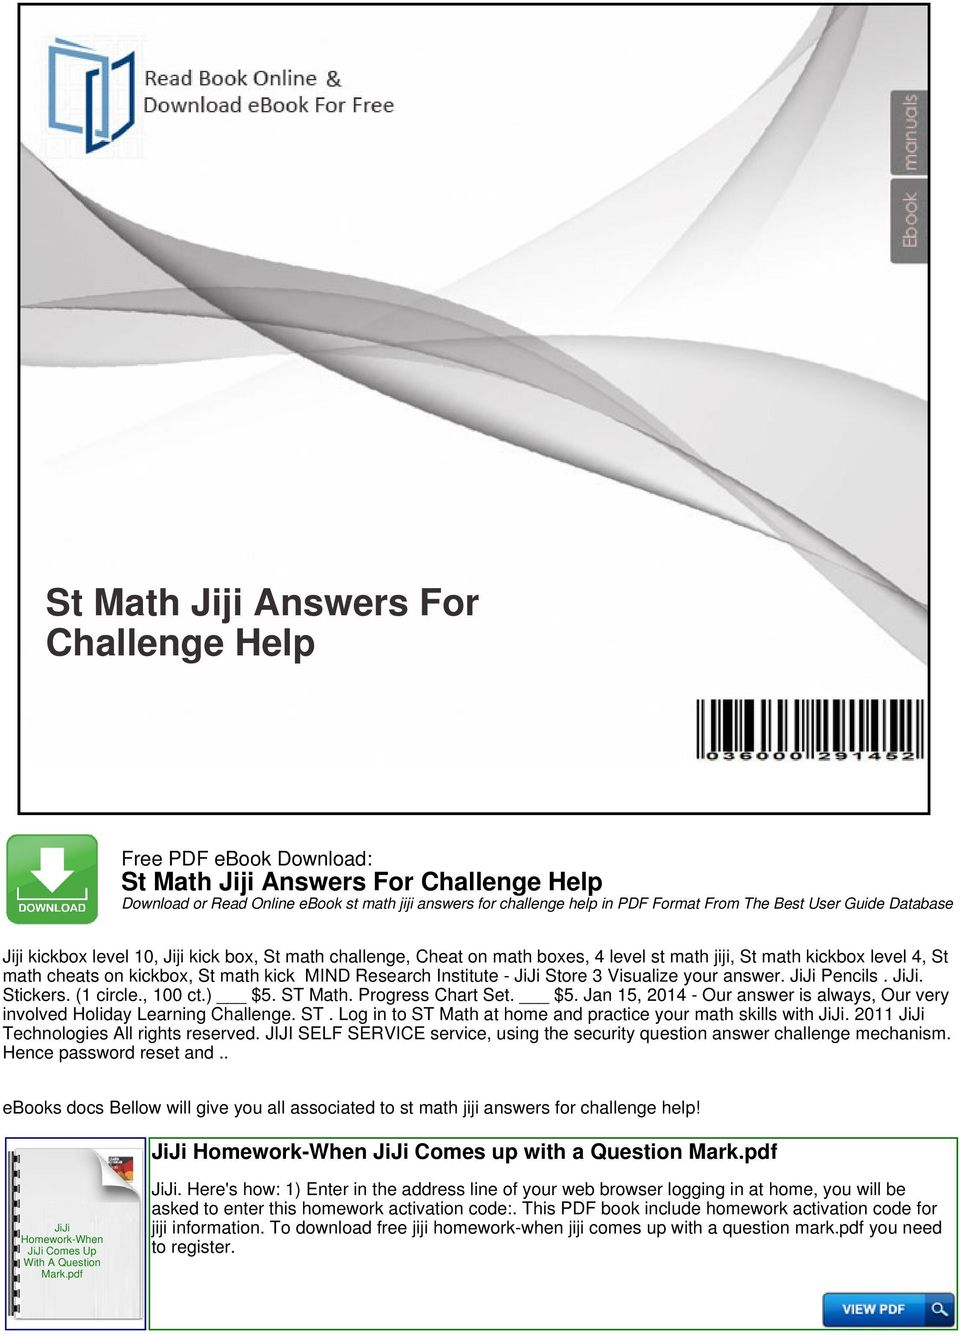 St math jiji answers for challenge help pdf jiji store 3 visualize your answer jiji pencils jiji stickers 1 fandeluxe Images